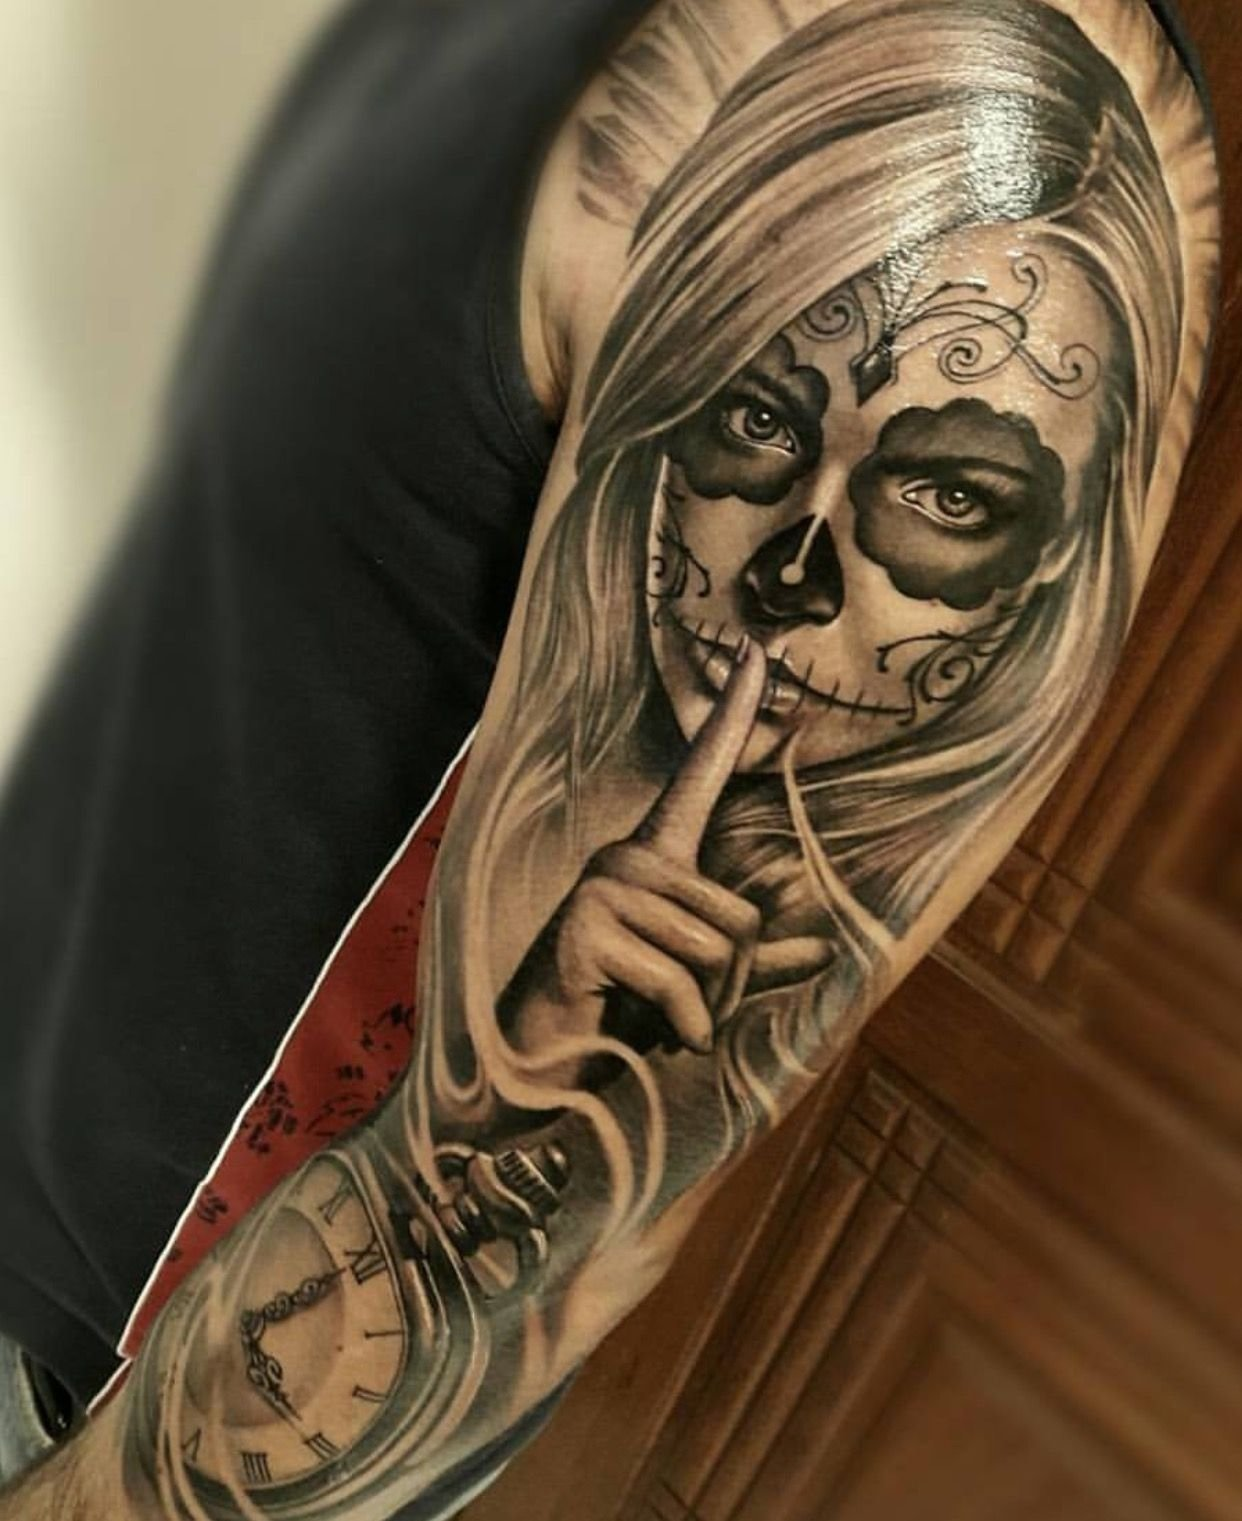 10 Fashionable Day Of The Dead Tattoo Ideas day of the dead tattoo sleeve tattoo pinterest tatouages 2021